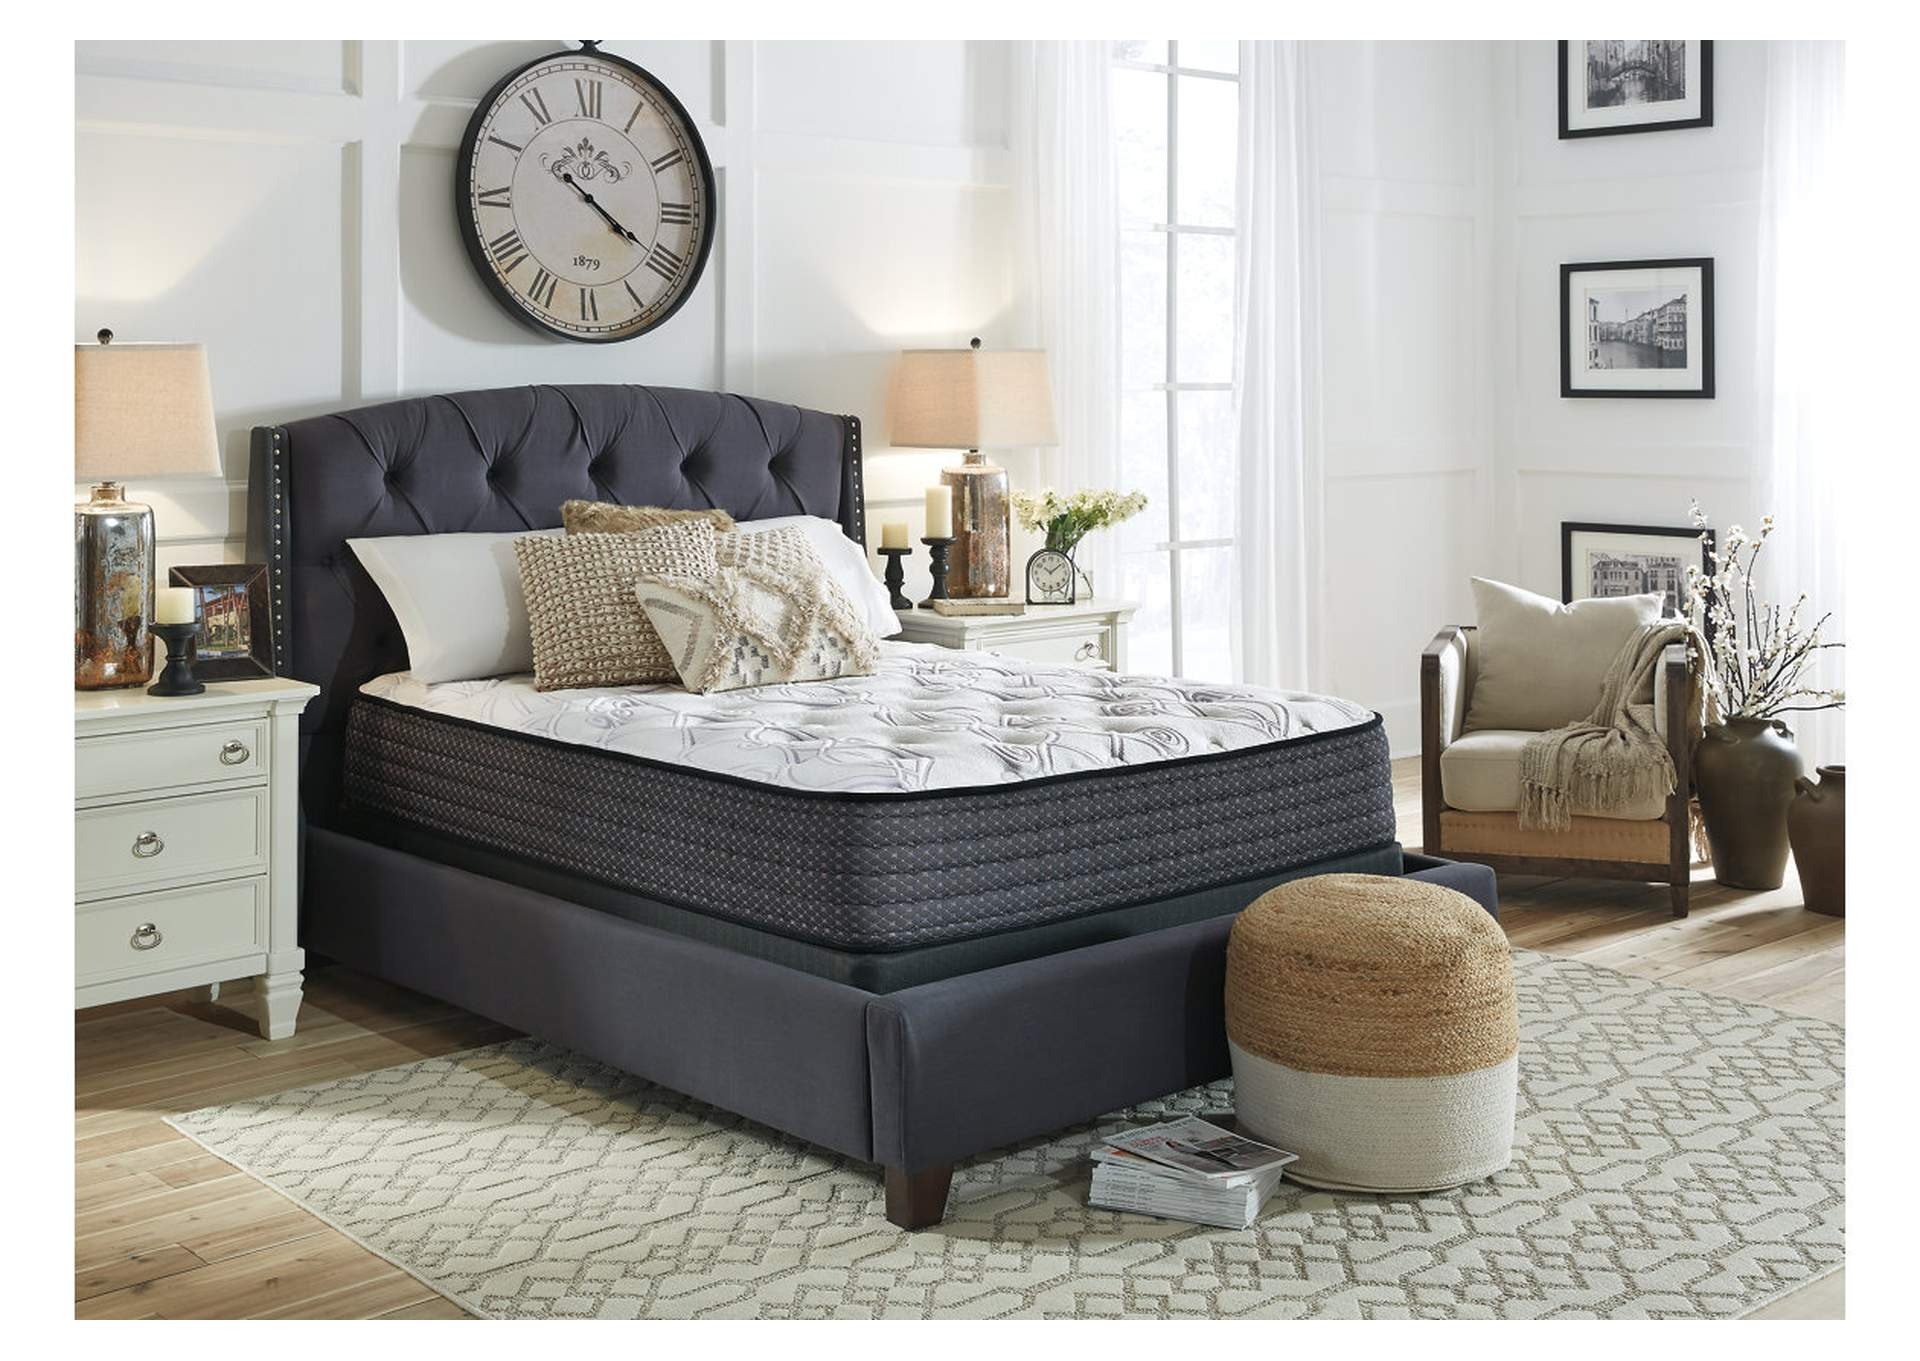 Limited Edition Plush King Mattress,Sierra Sleep by Ashley